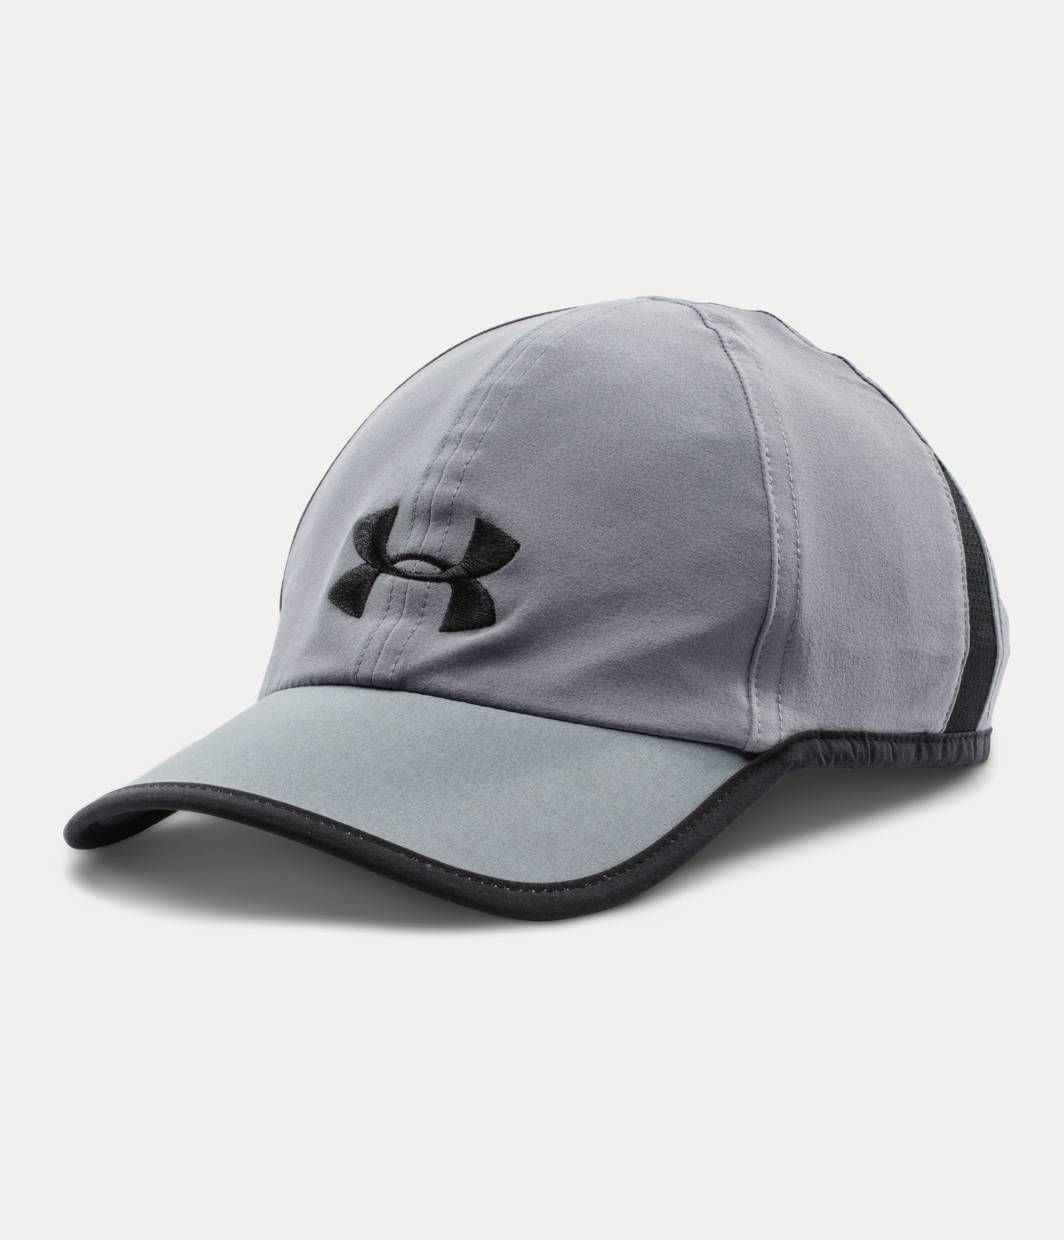 e7a5f09b657 ... switzerland cap mens ua shadow run cap under armour us 1b924 9e32a